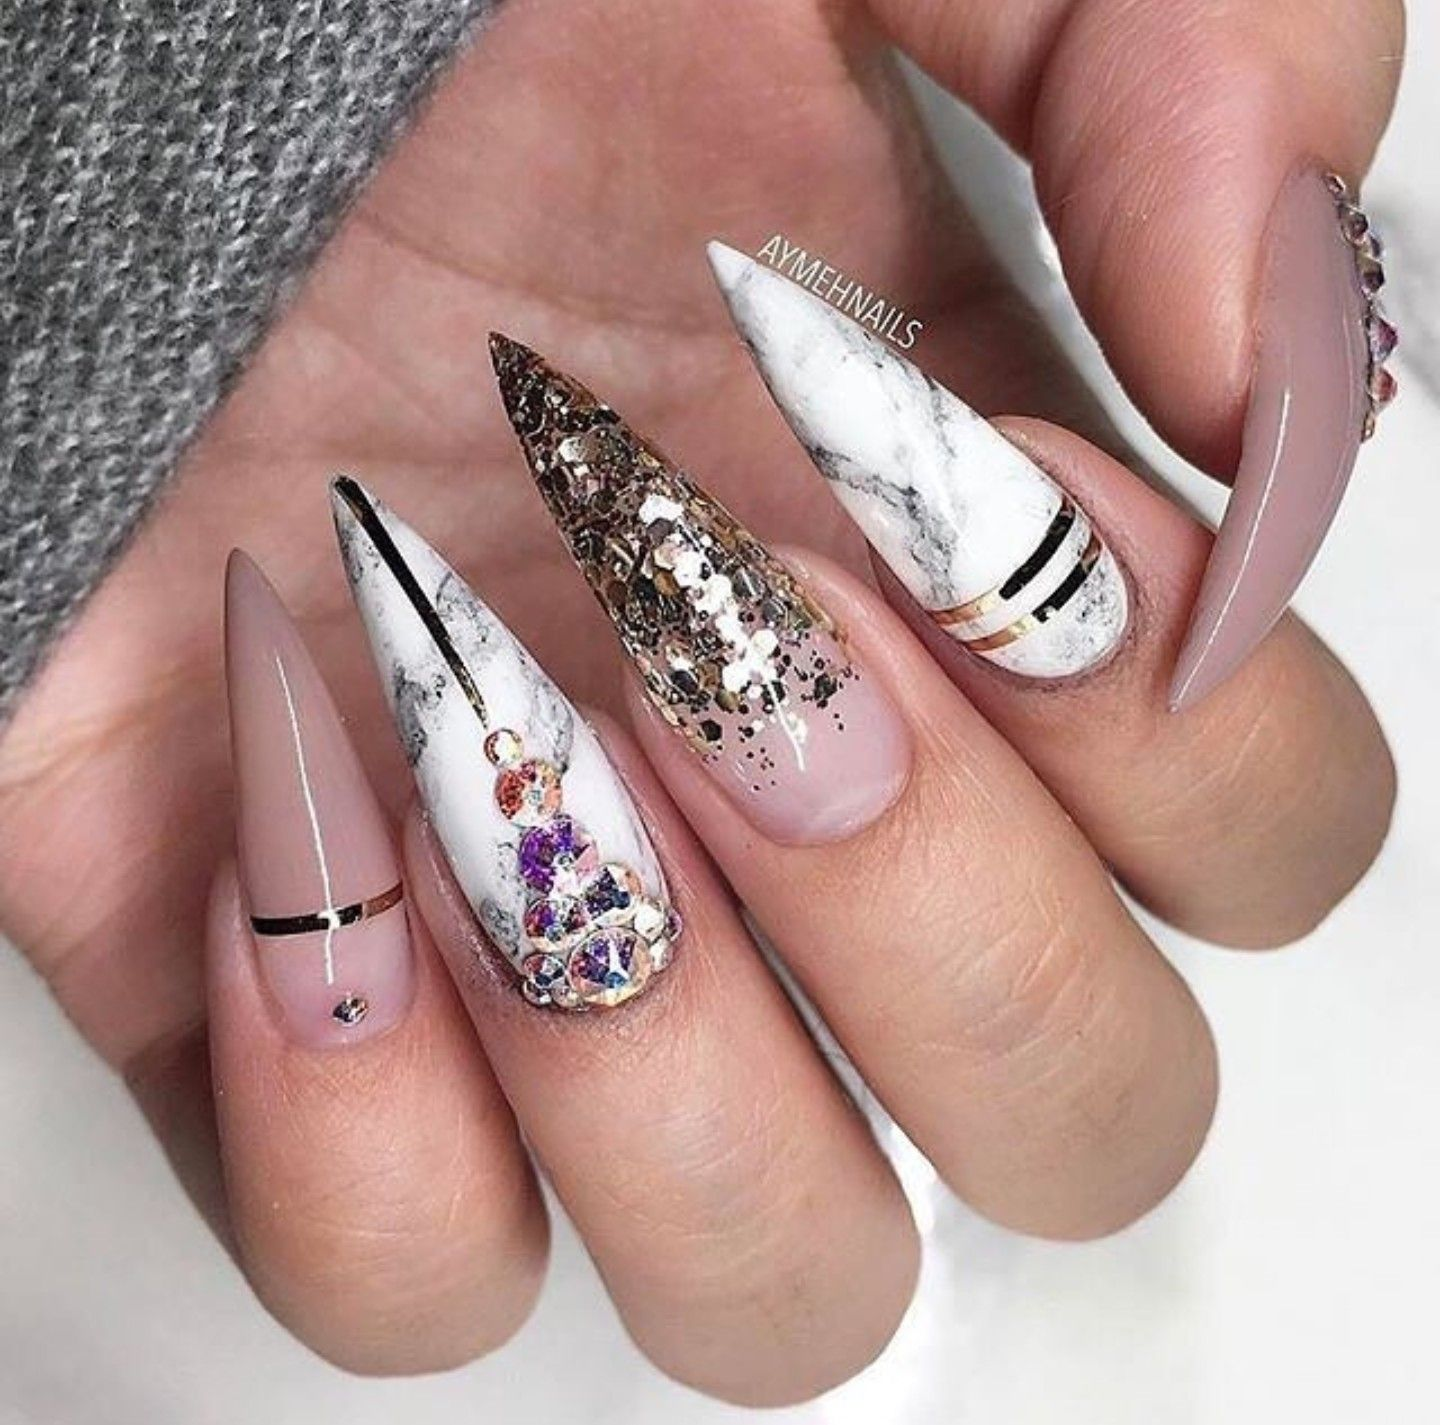 Pinterest : shanonduvers | Nails | Pinterest | Sophisticated nails ...